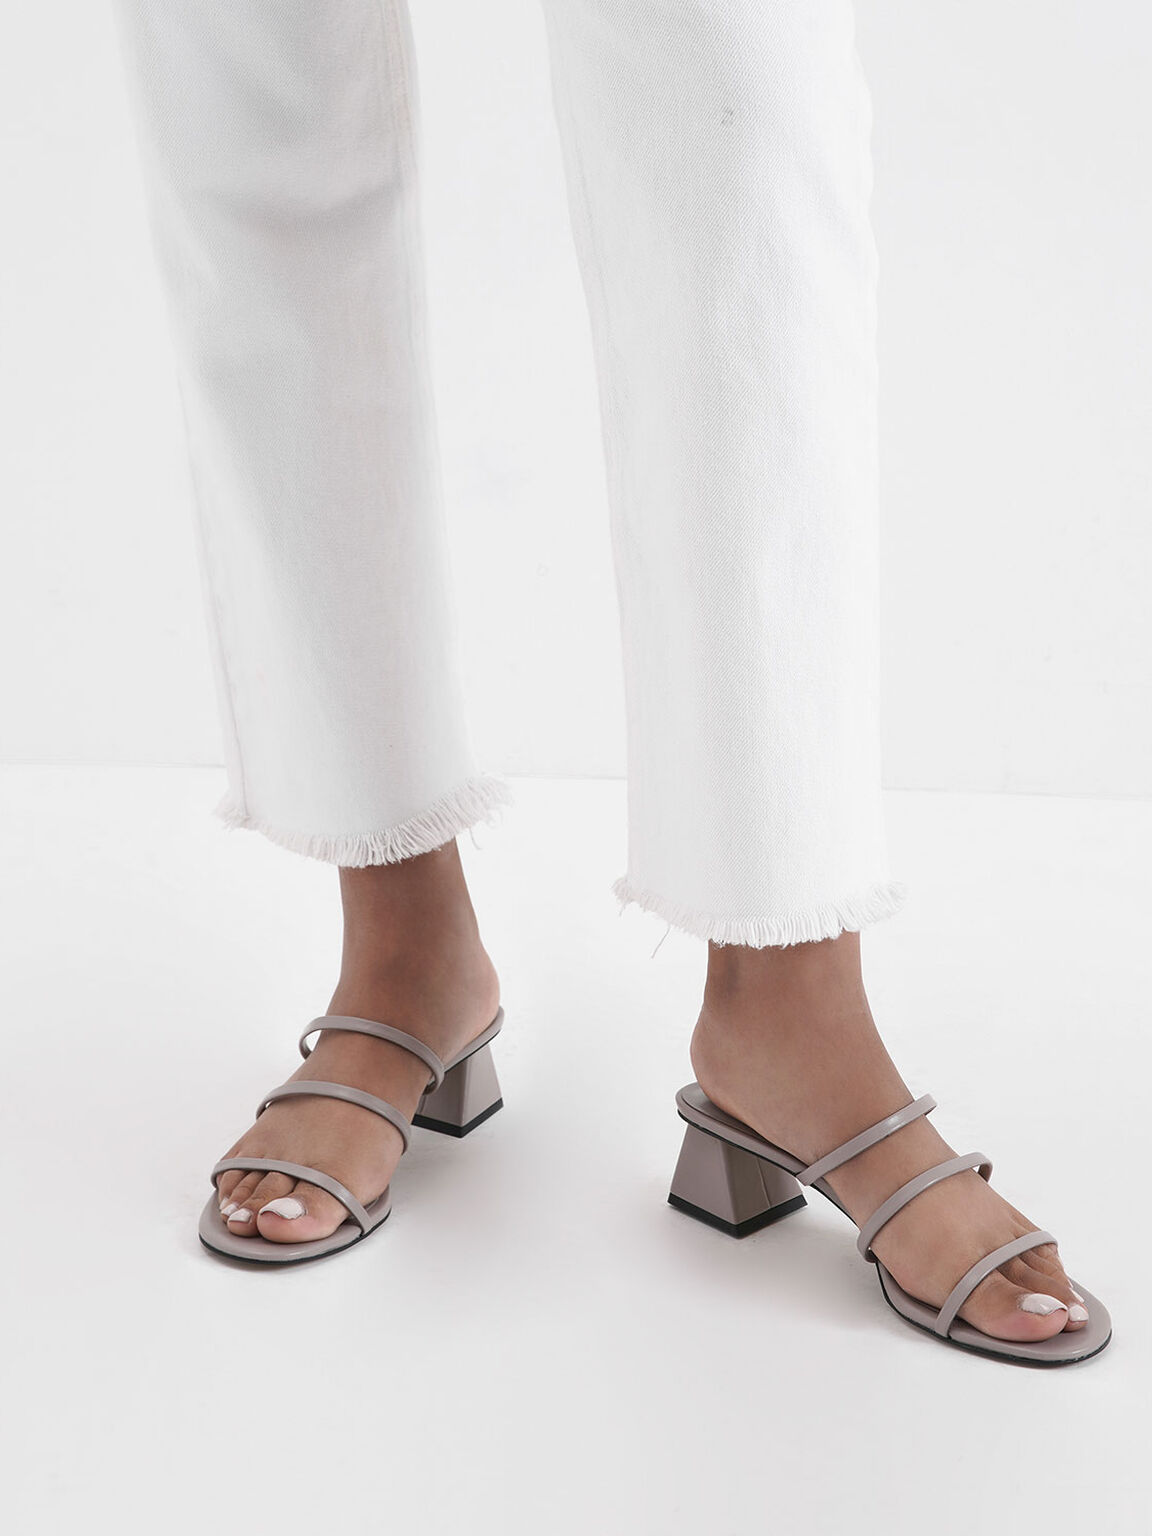 Triple Strap Slide Sandals, Nude, hi-res